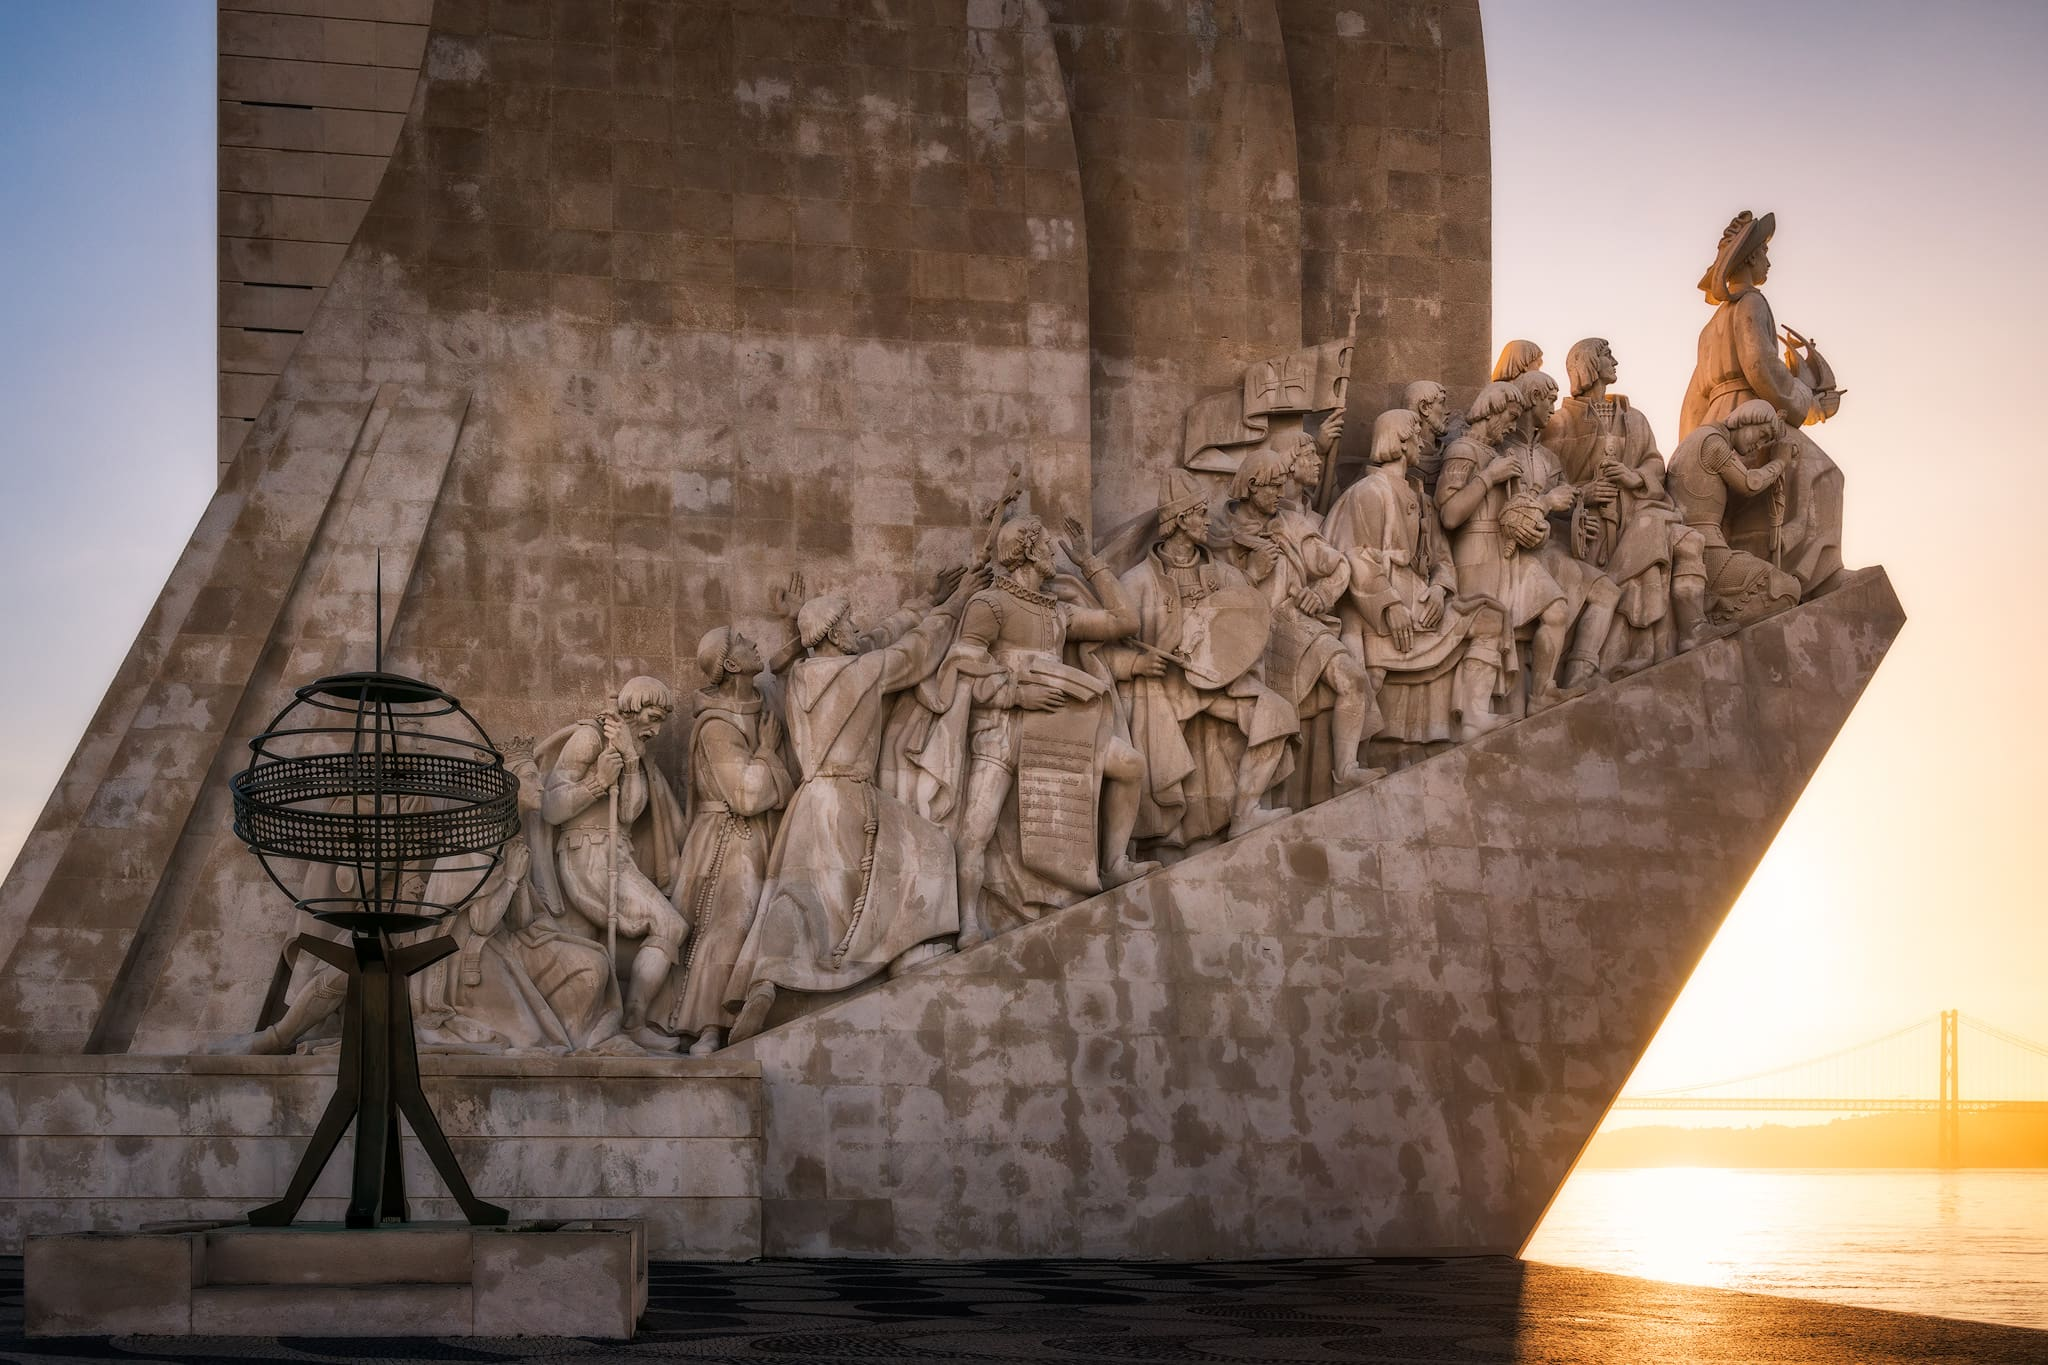 The Monument to the Discoveries (Padrão dos Descobrimentos) in Lisbon; Portugal